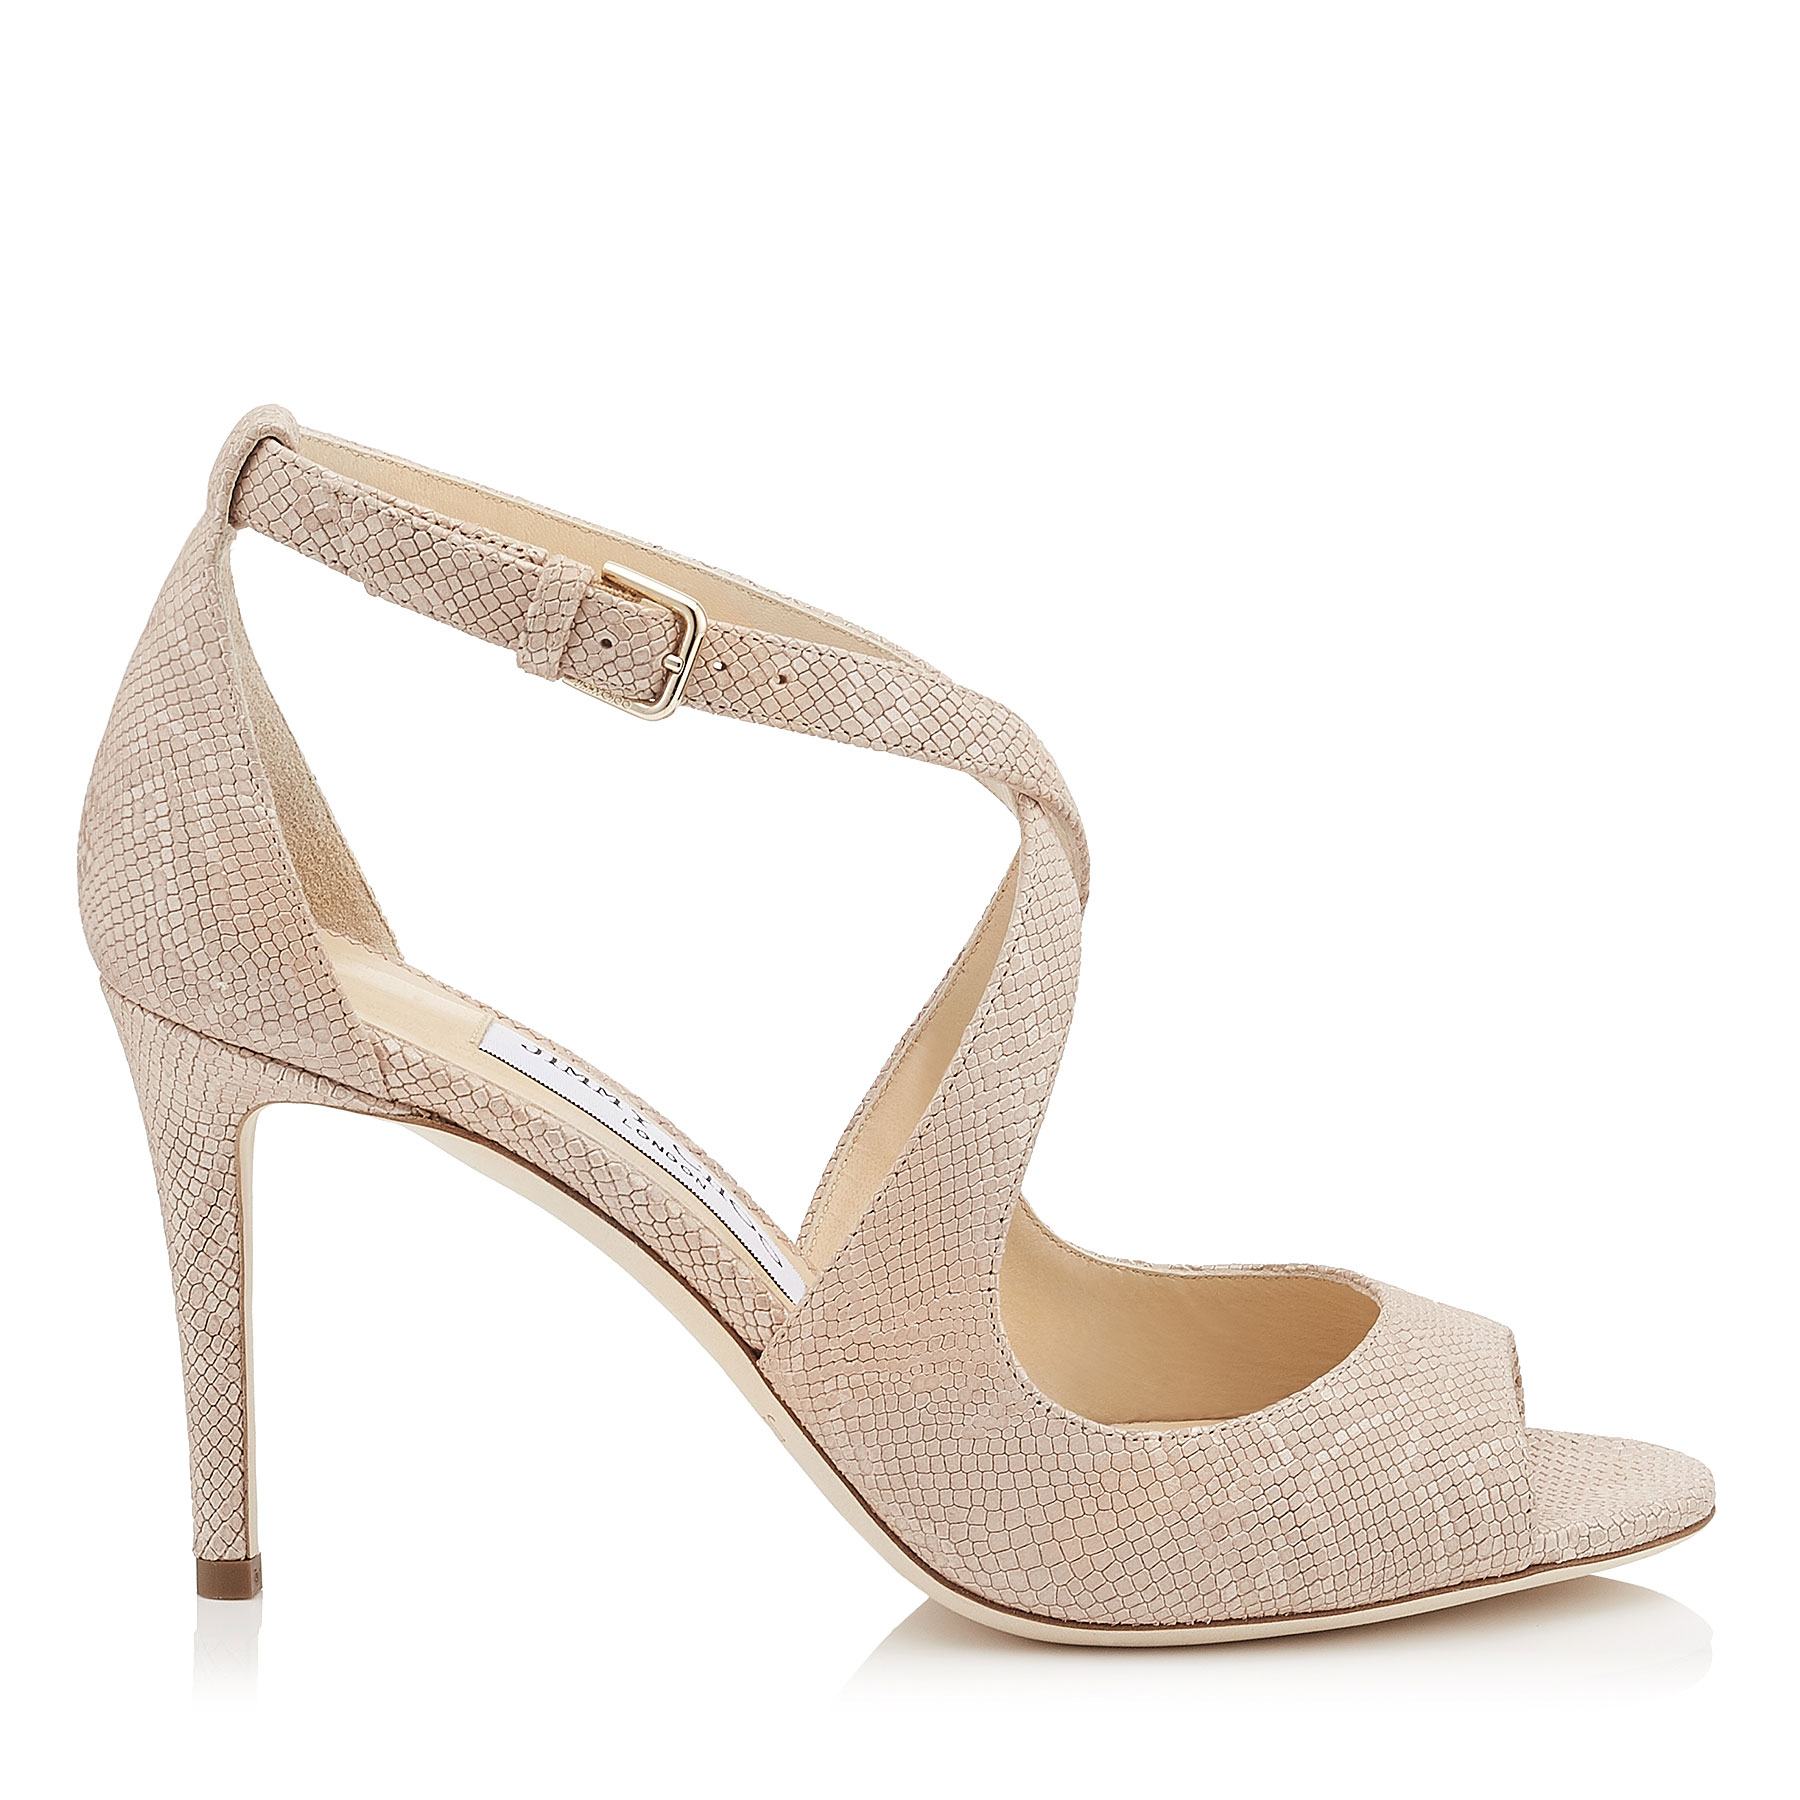 EMILY 85 Nude Metallic Embossed Lamé Leather Sandals